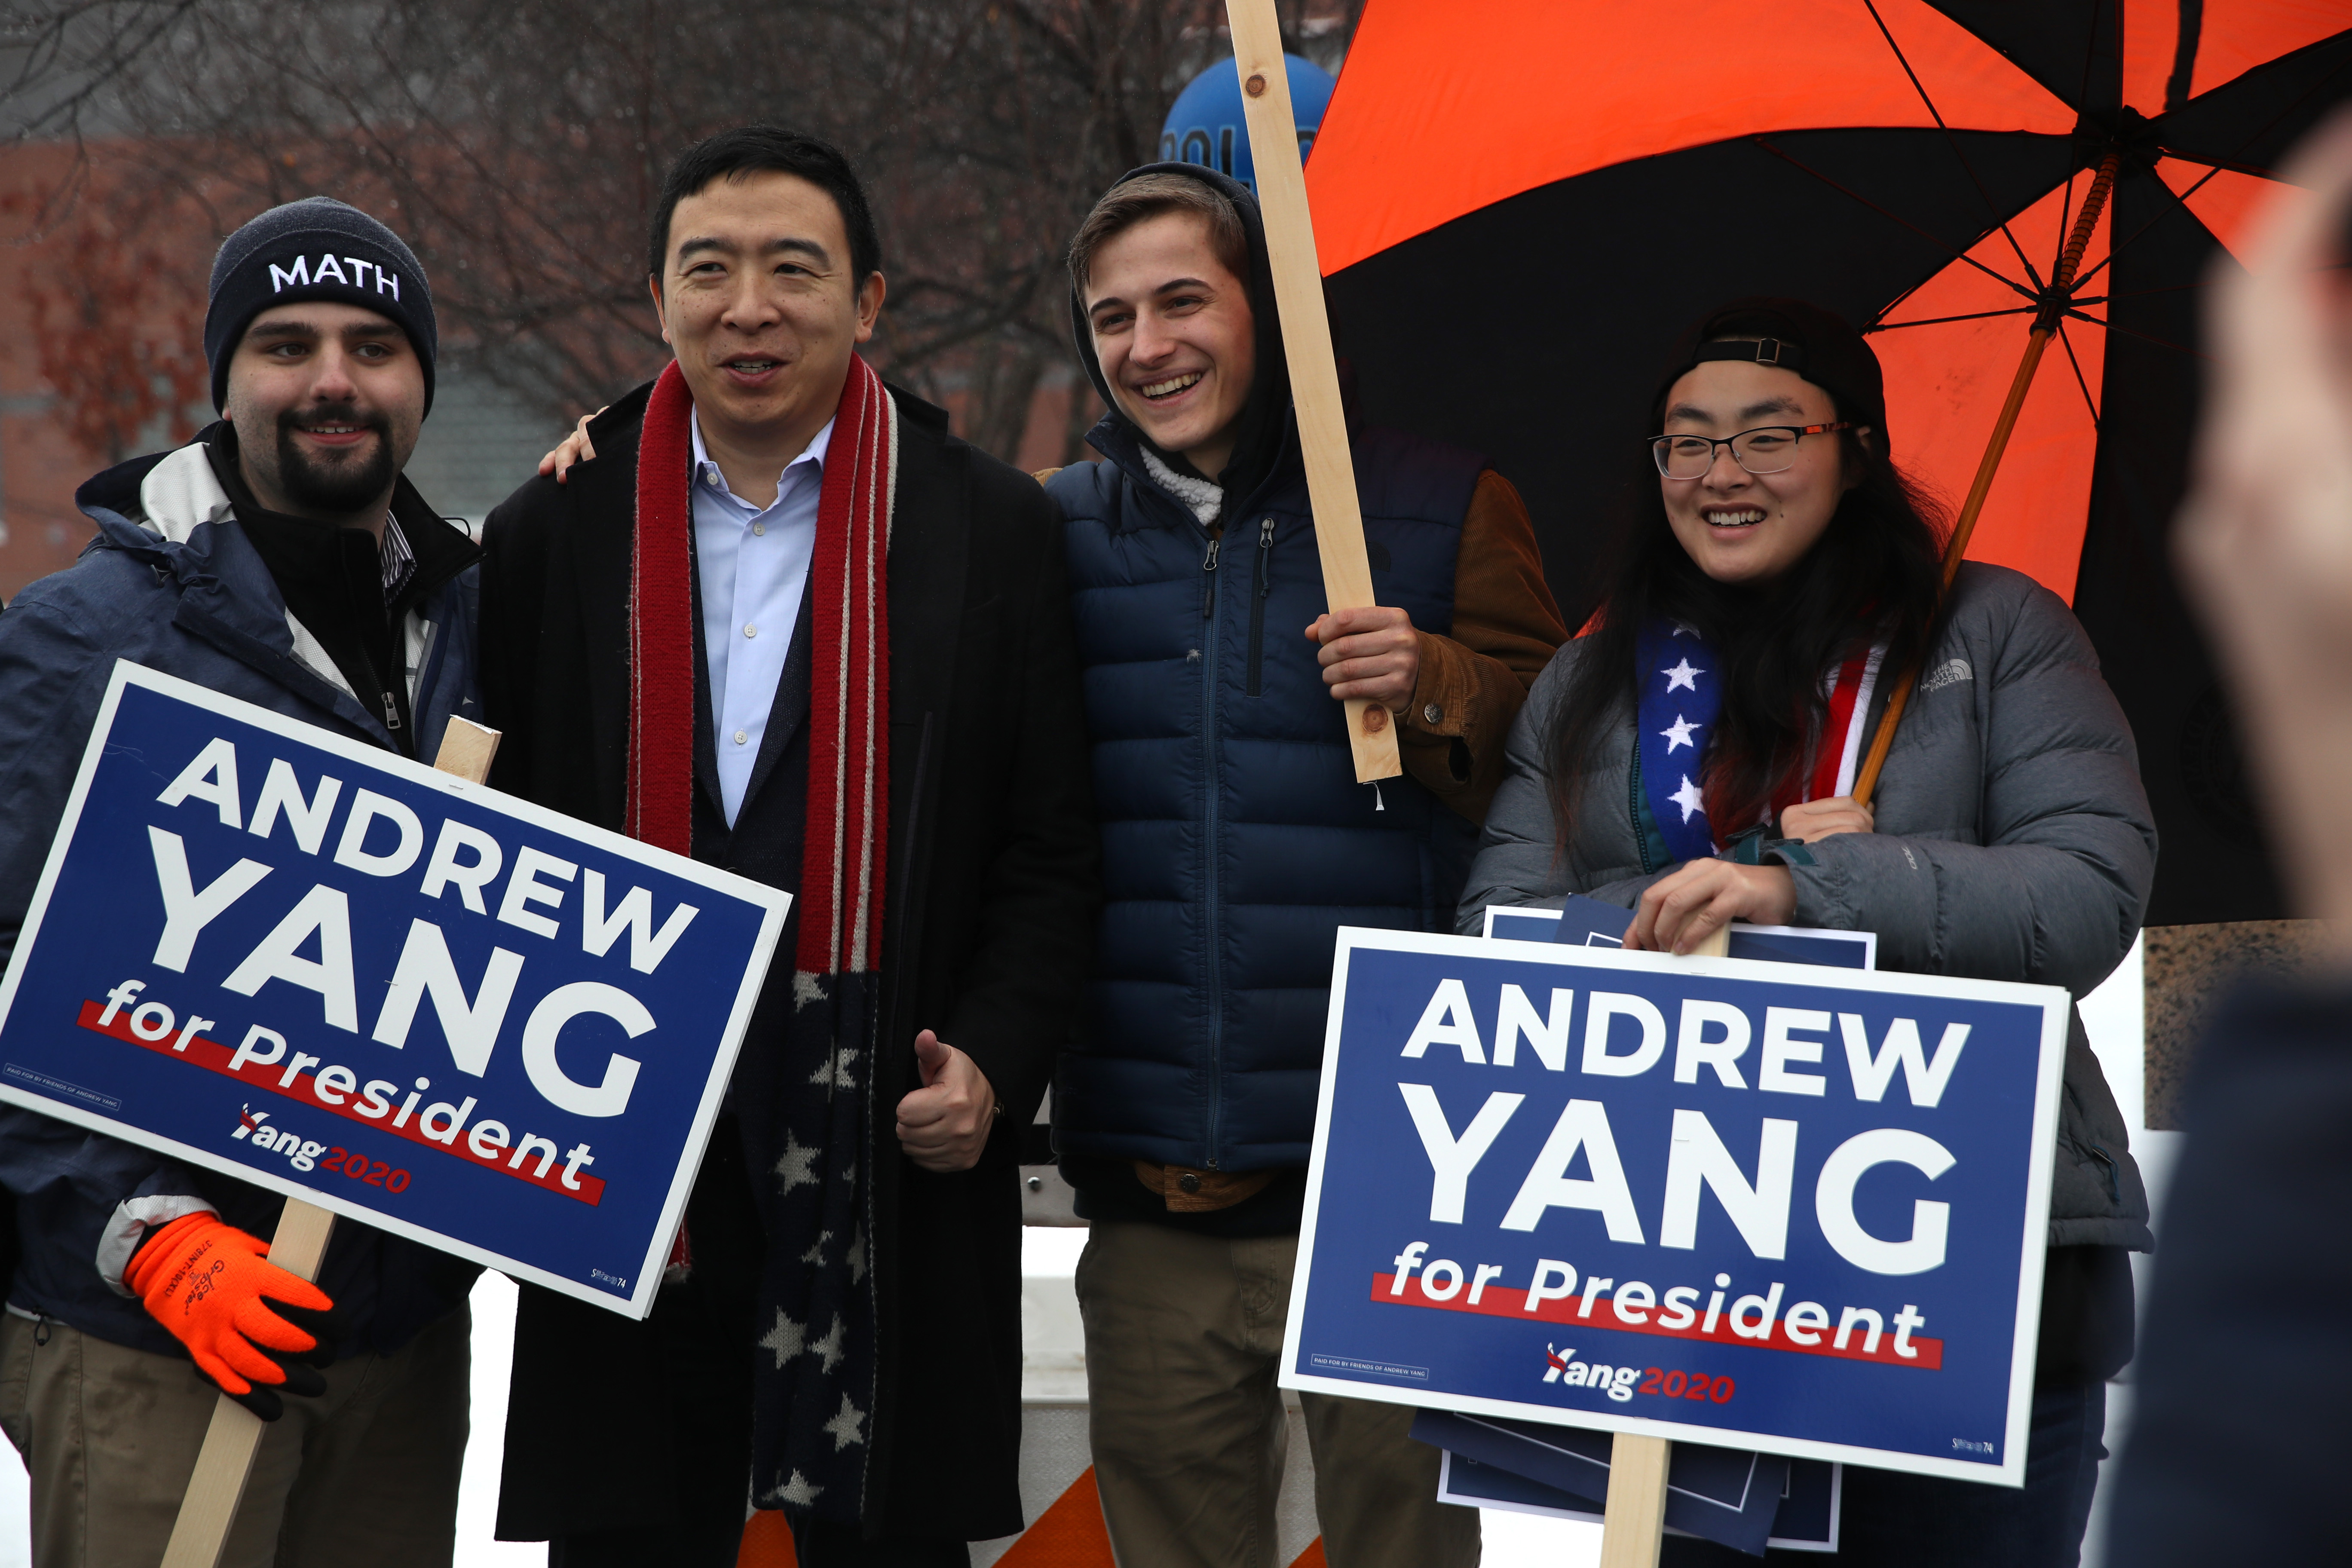 KEENE, NEW HAMPSHIRE - FEBRUARY 11: Democratic presidential candidate Andrew Yang take a photo with supporters who are holding campaign signs in front of a polling station on February 11, 2020 in Keene, New Hampshire. New Hampshire holds its first in the nation primary today. (Photo by Justin Sullivan/Getty Images)